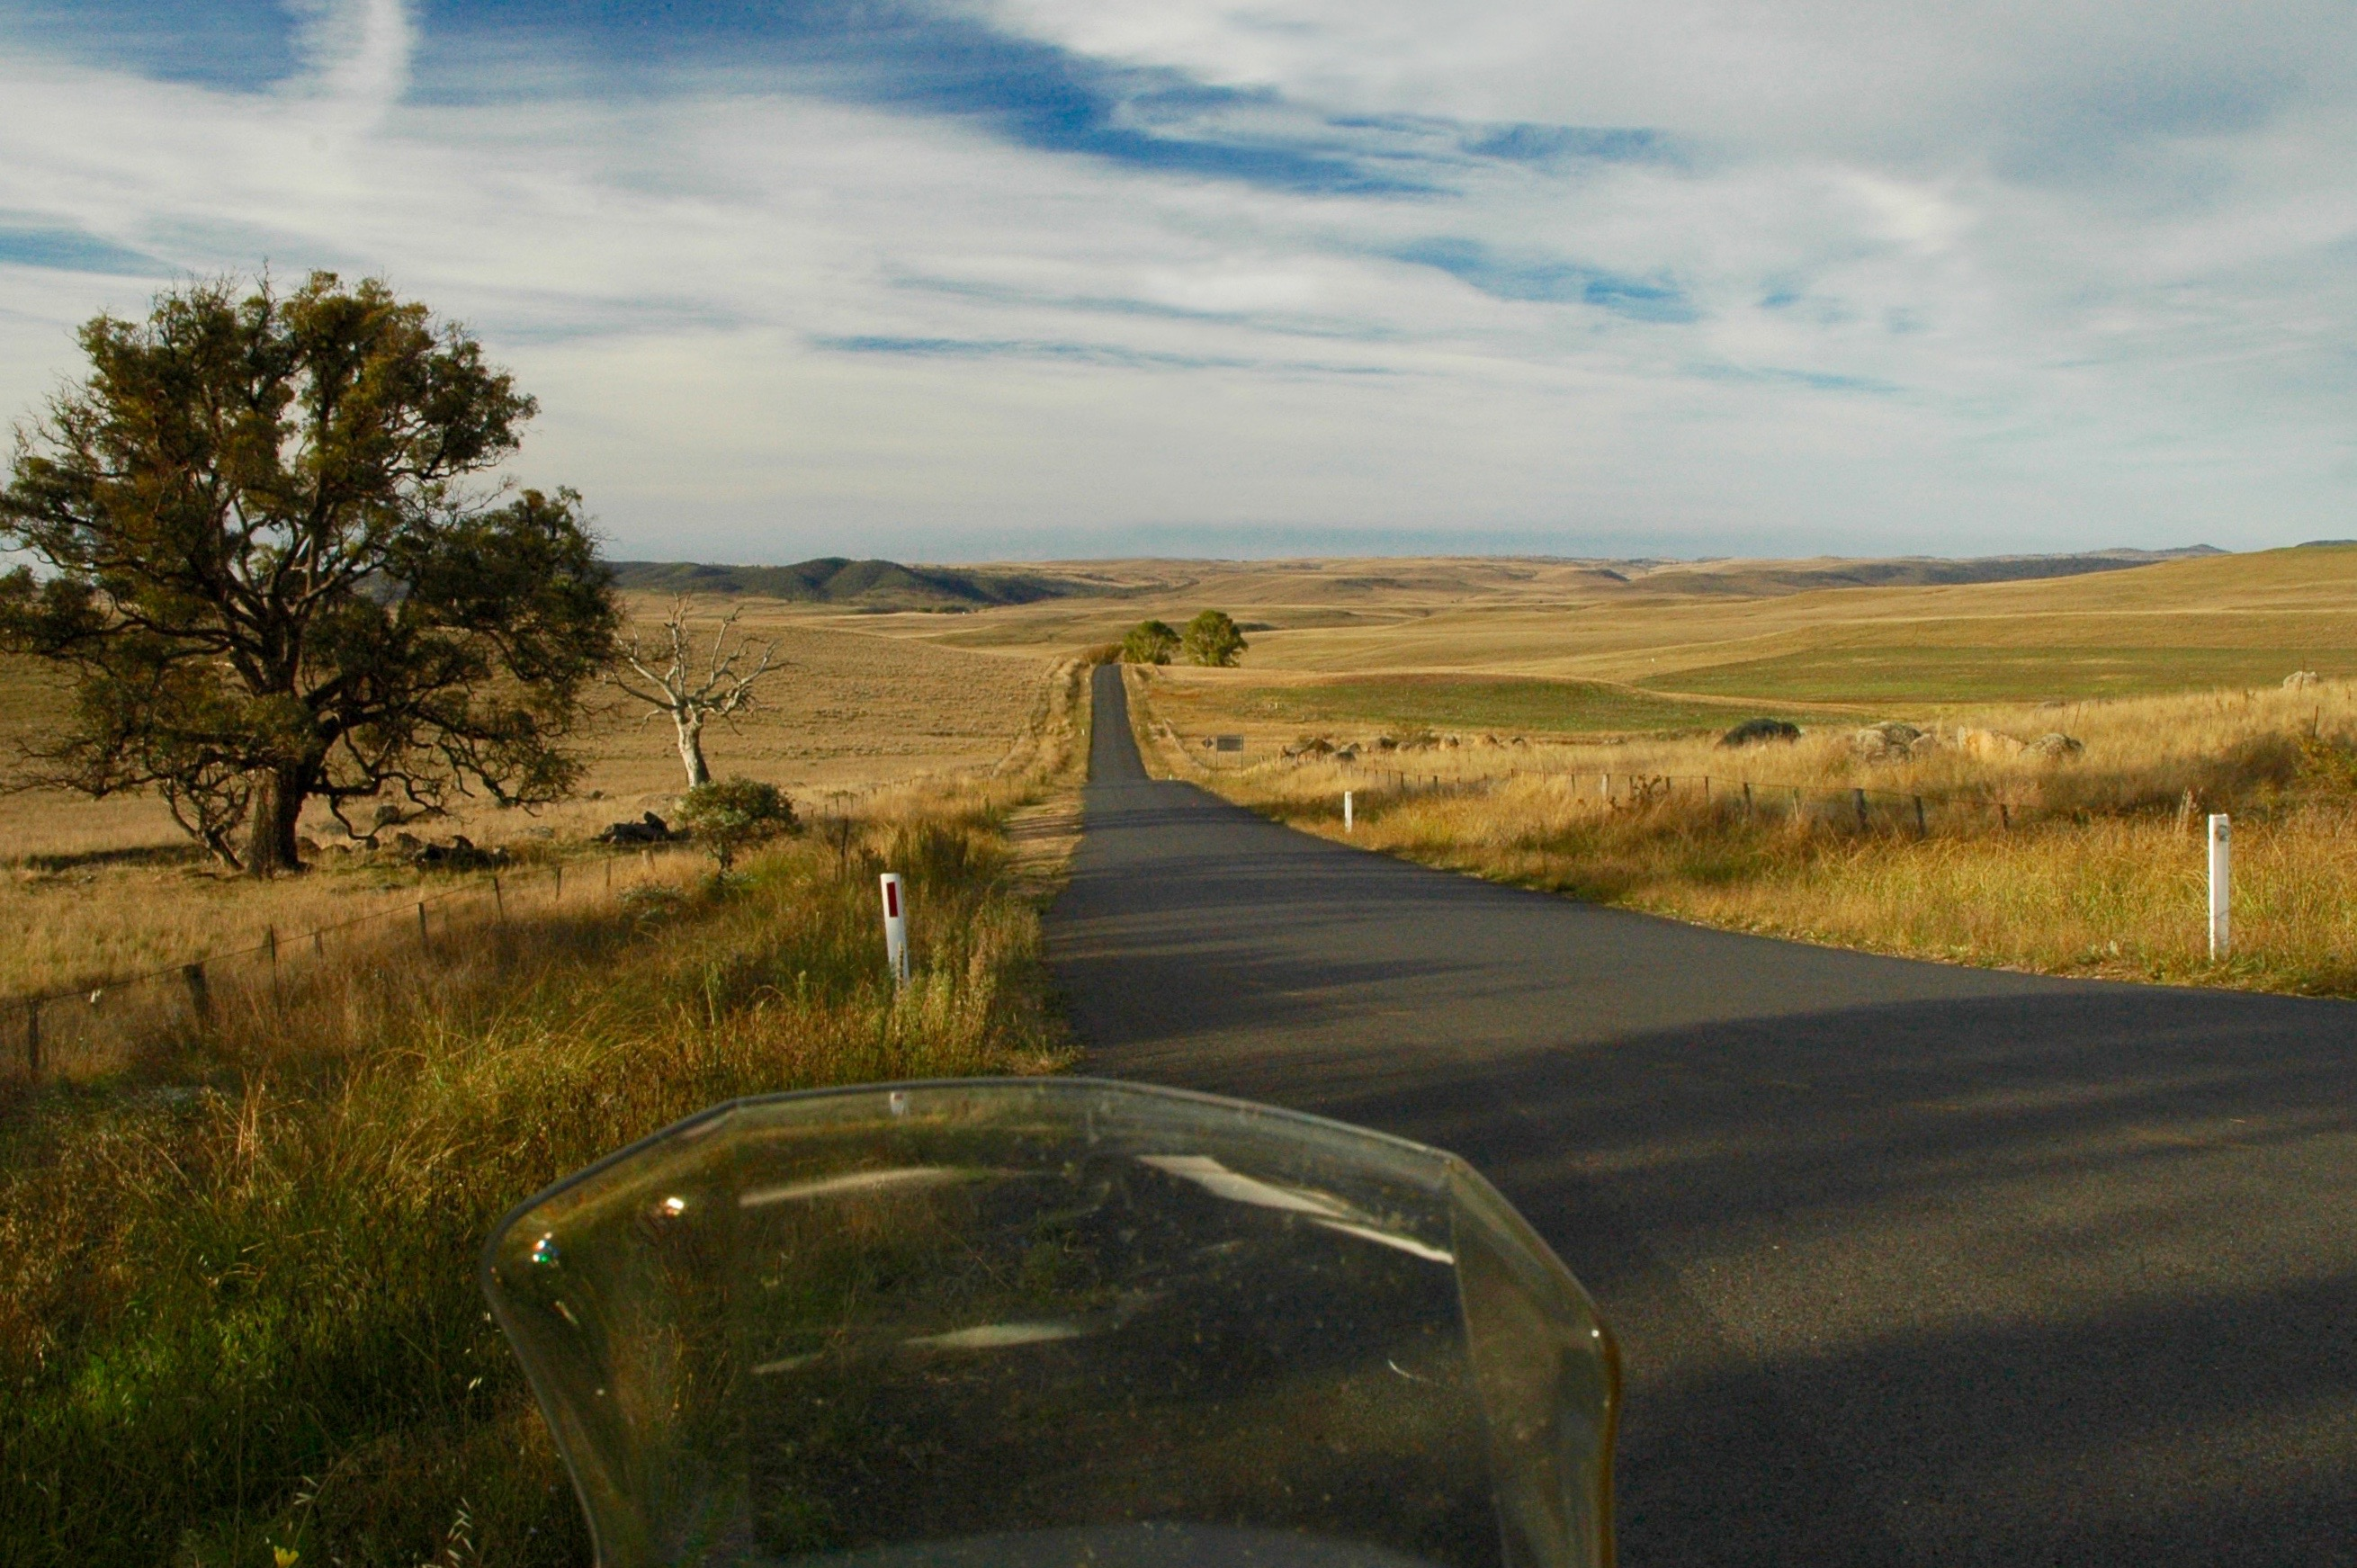 Photo of the open road from a motorbike